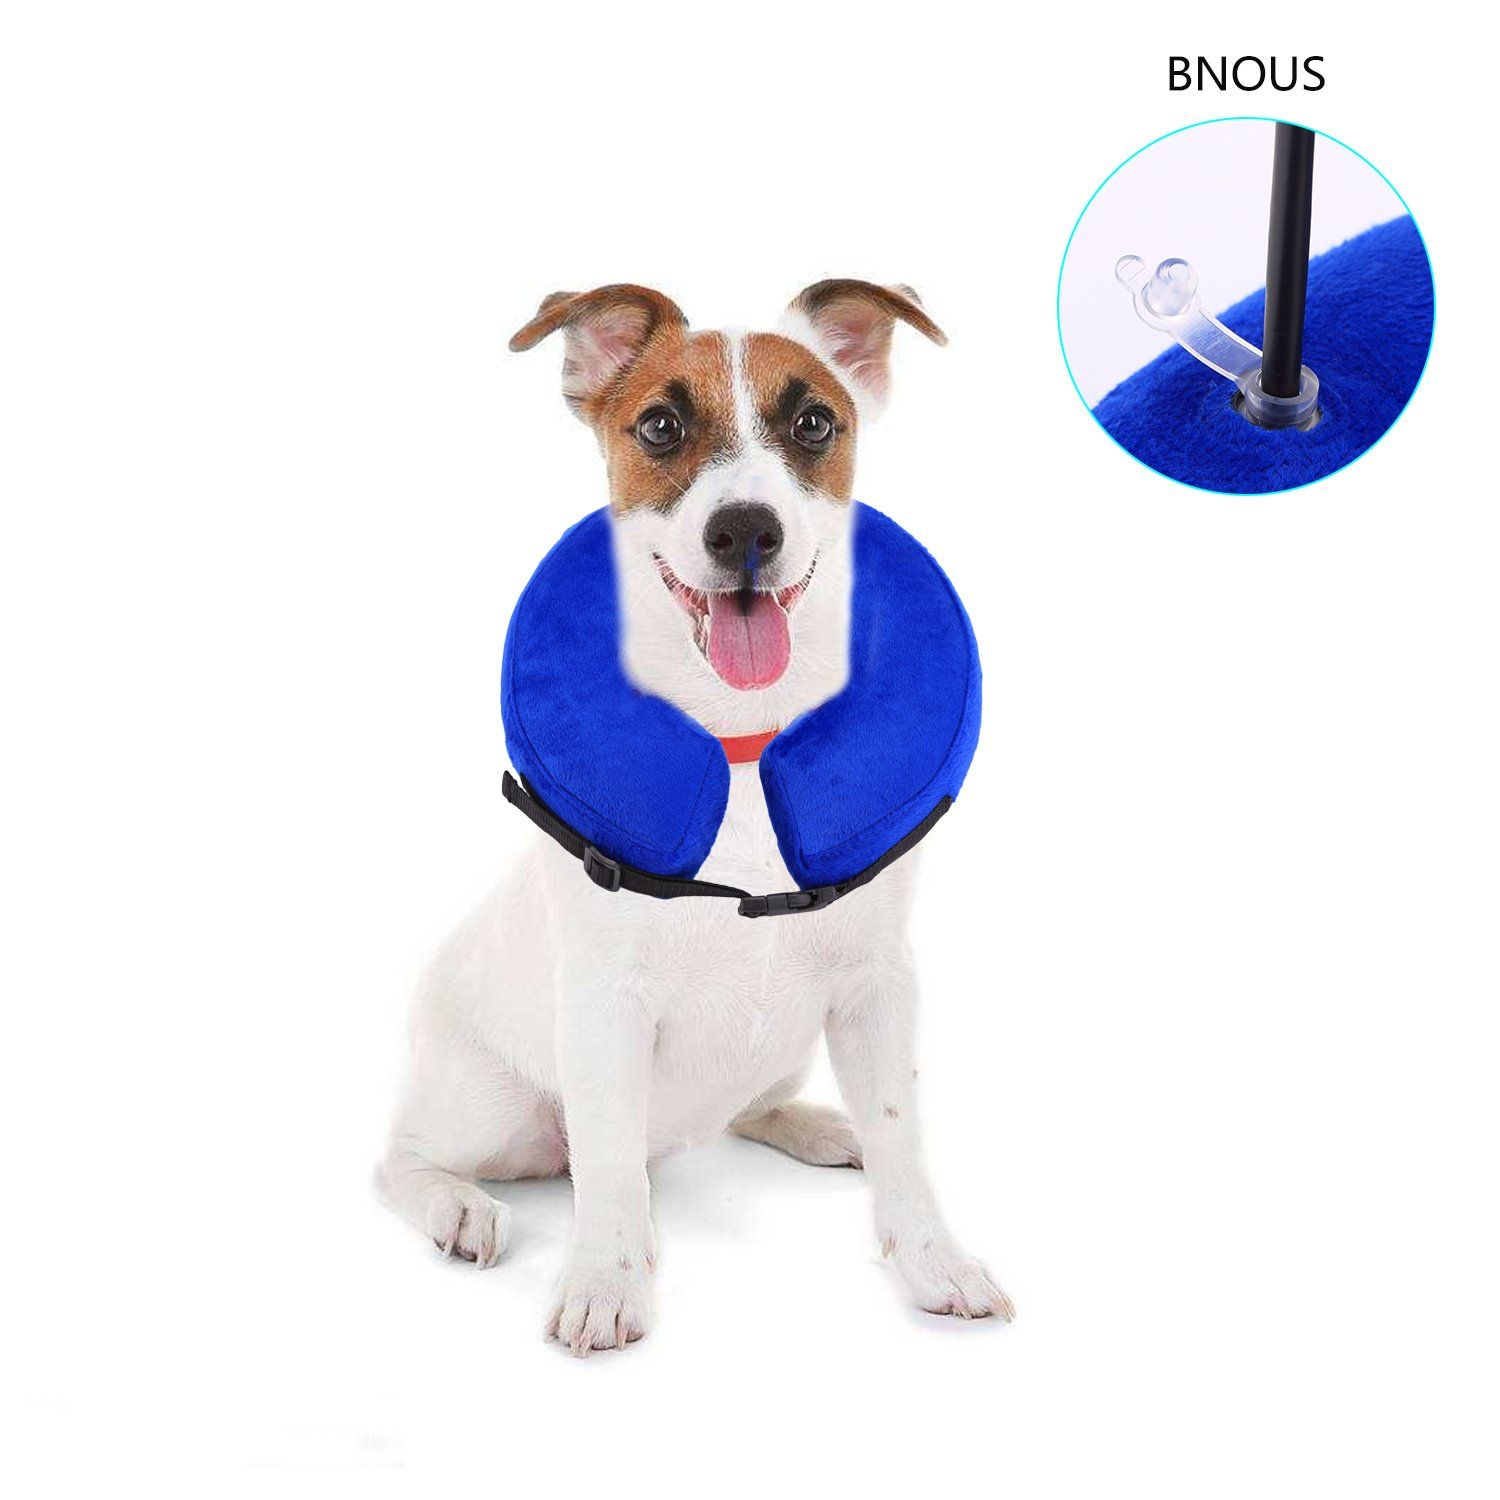 Petaz Inflatable Recovery Collar Dog Elizabethan Collar Postoperative Wound Healing Comfortable Soft Ecollar For All Size Dogs Cats M Dog Cat Cat Collars Cats